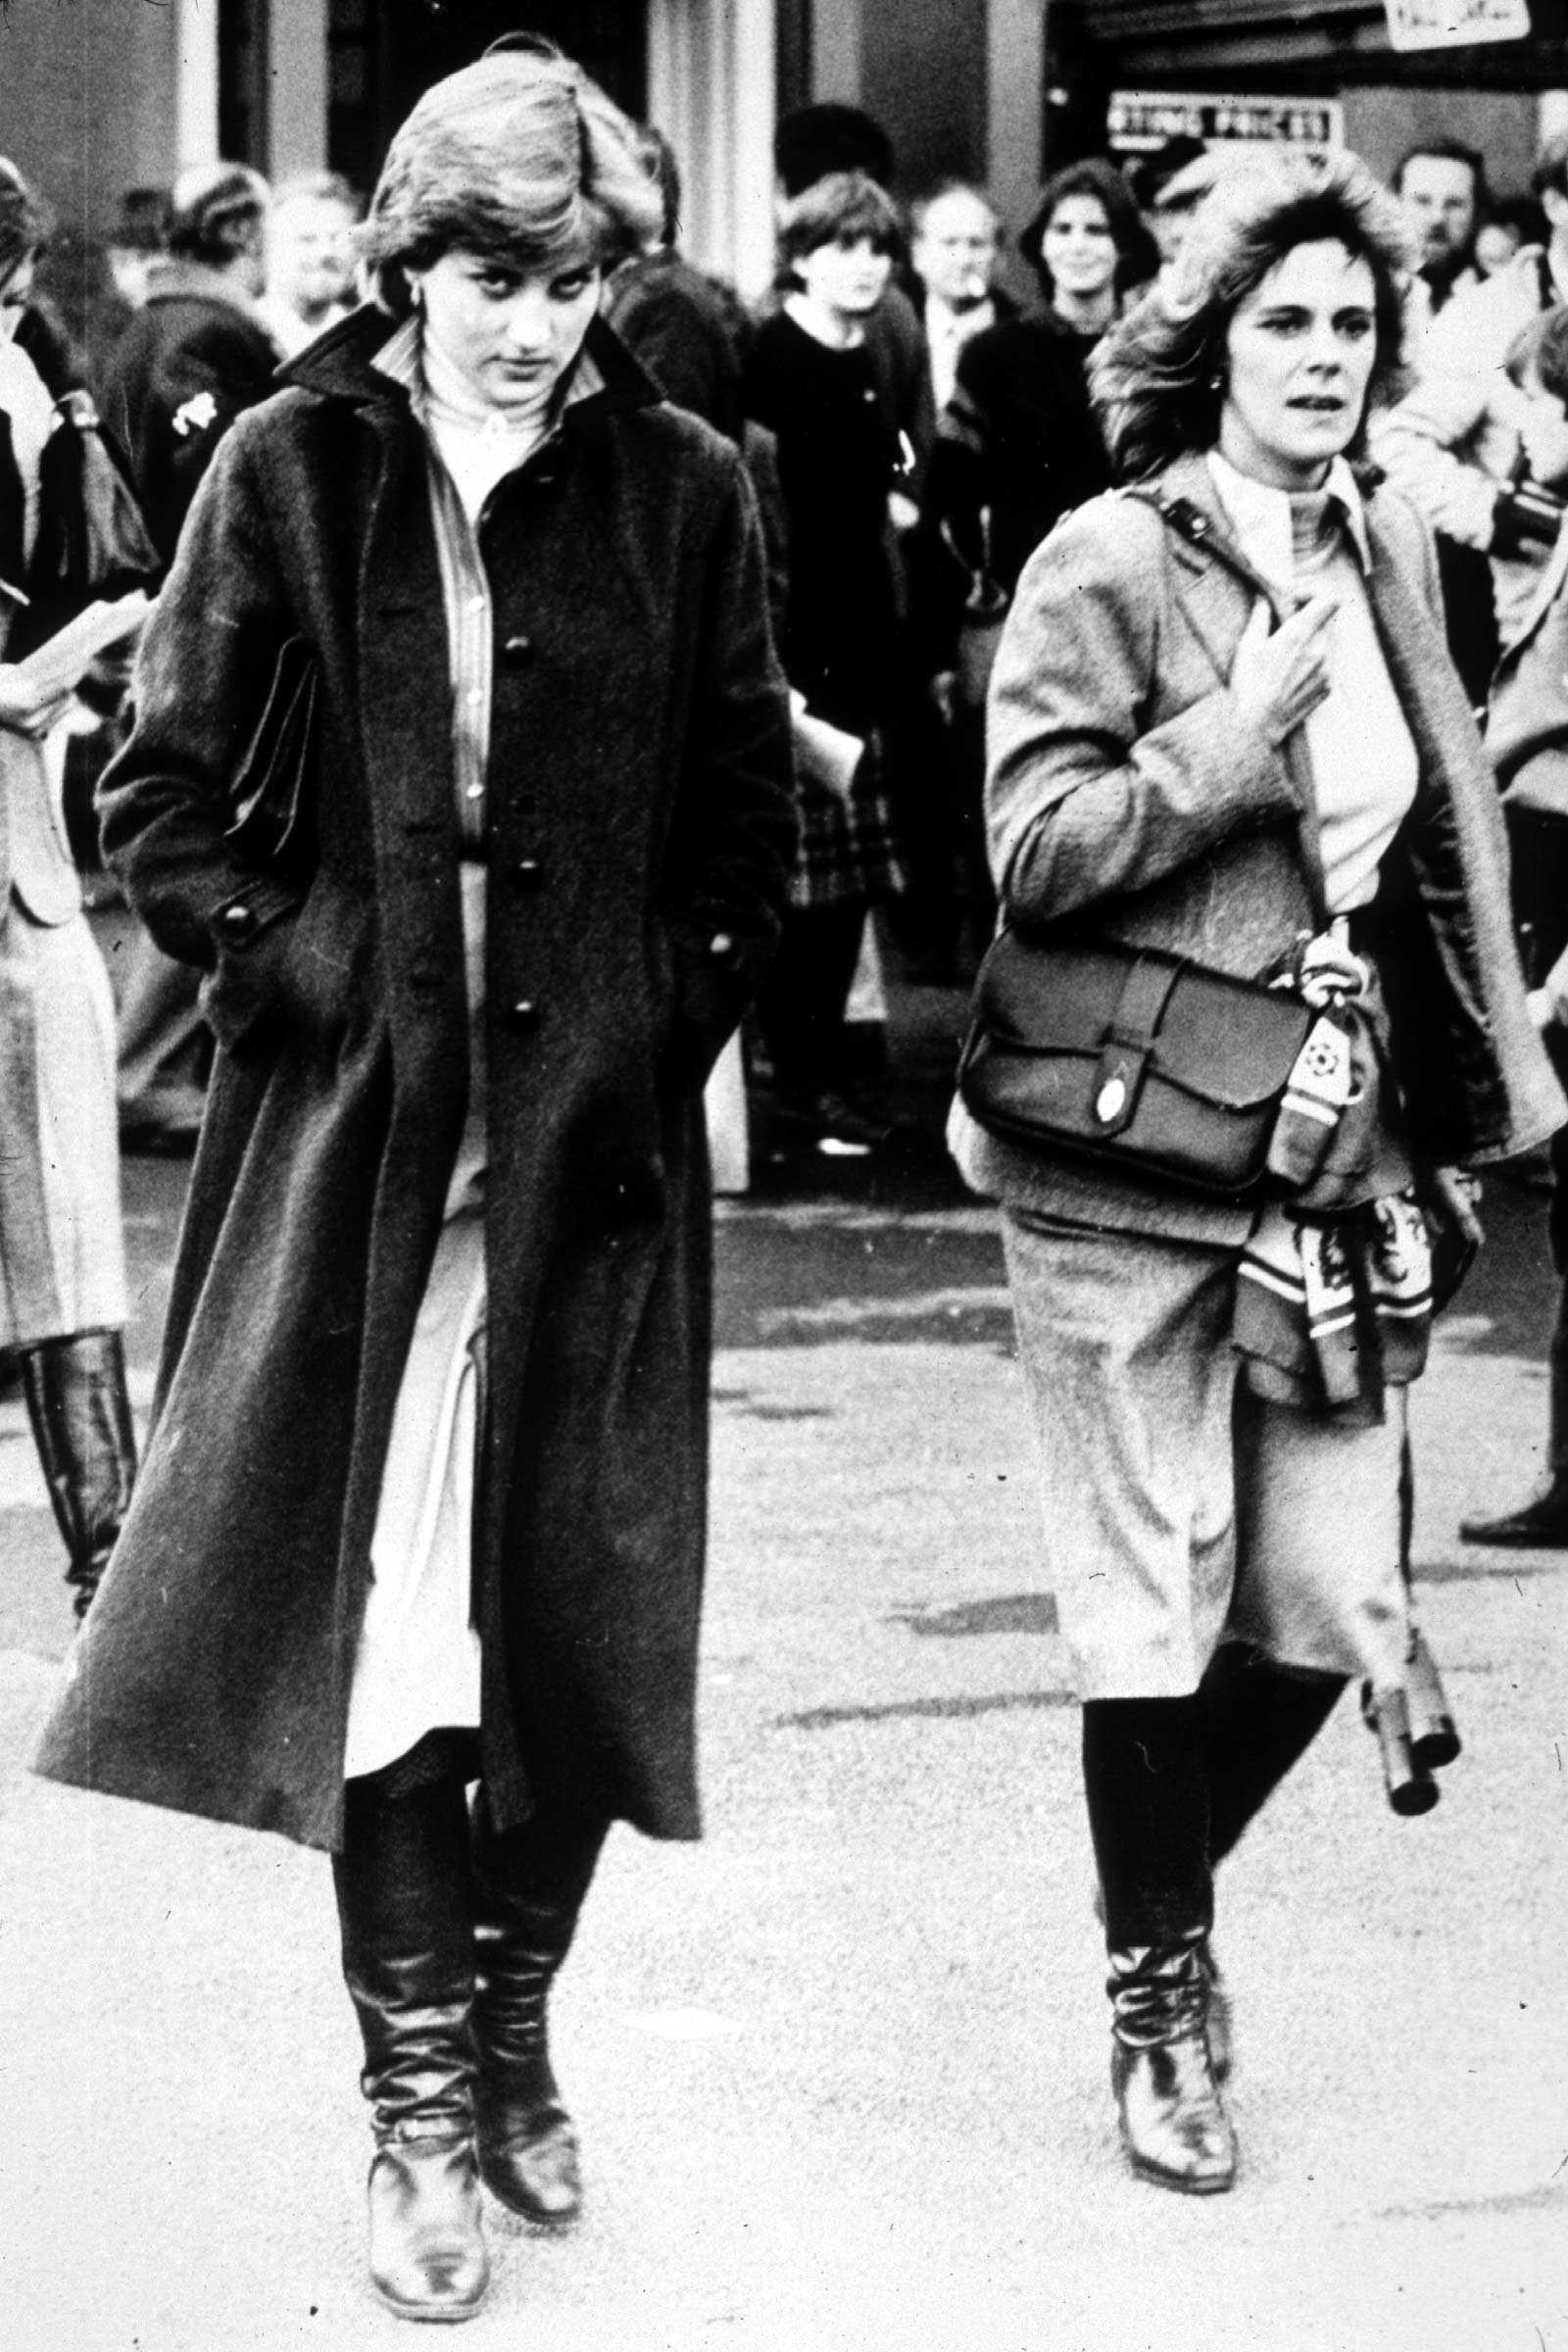 Lady Diana Spencer and Camilla Parker-Bowles at Ludlow Races where Prince Charles is competing, 1980. (Photo by Express Newspapers/Archive Photos)